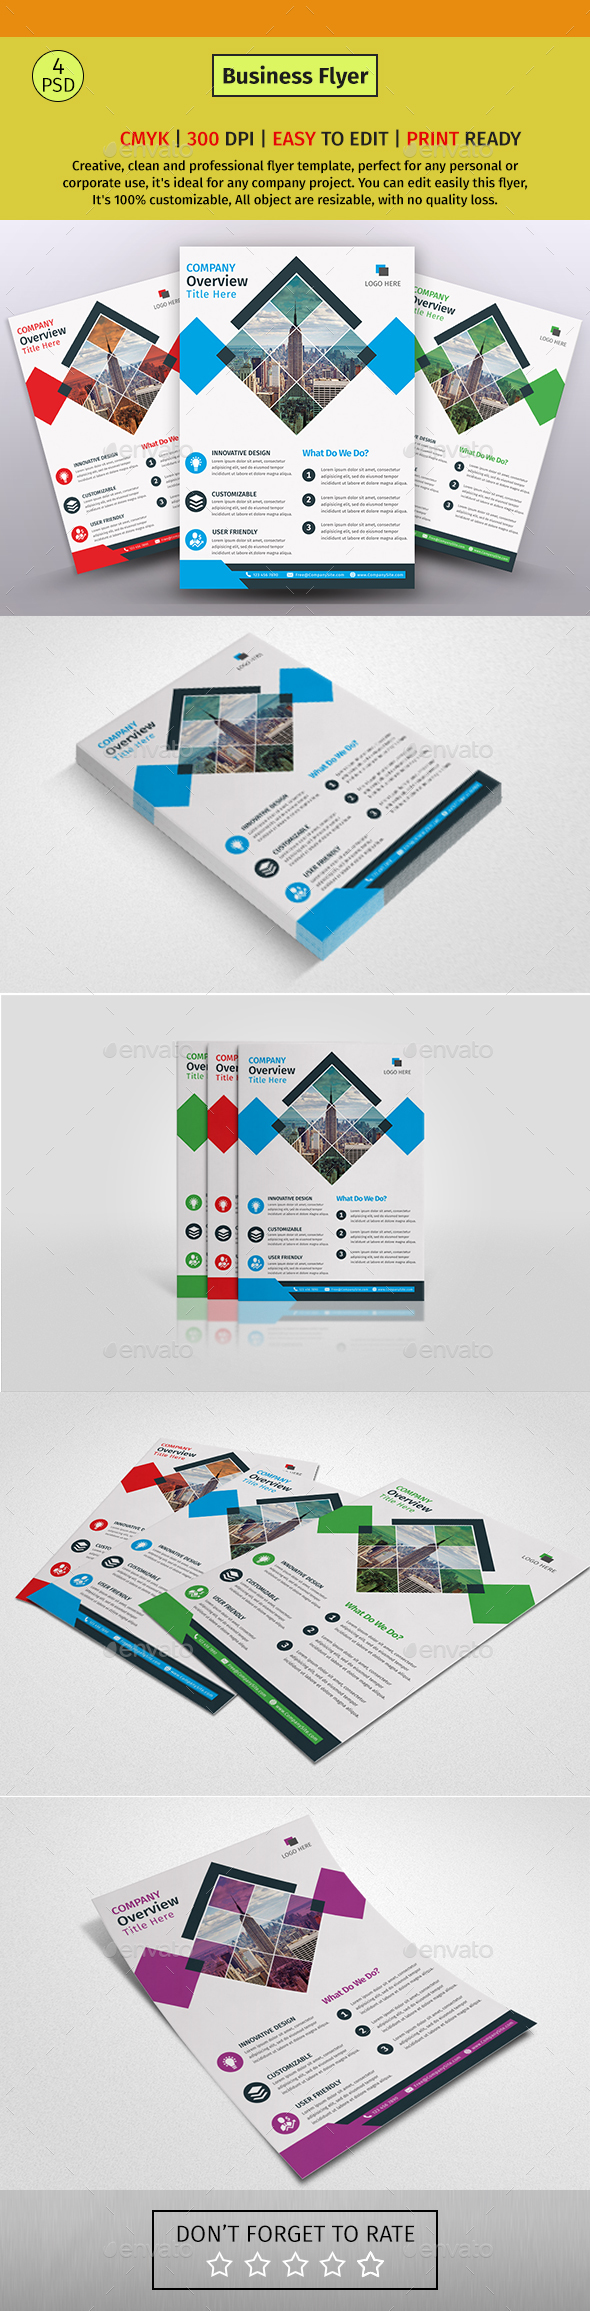 GraphicRiver A4 Corporate Business Flyer #41 20612537